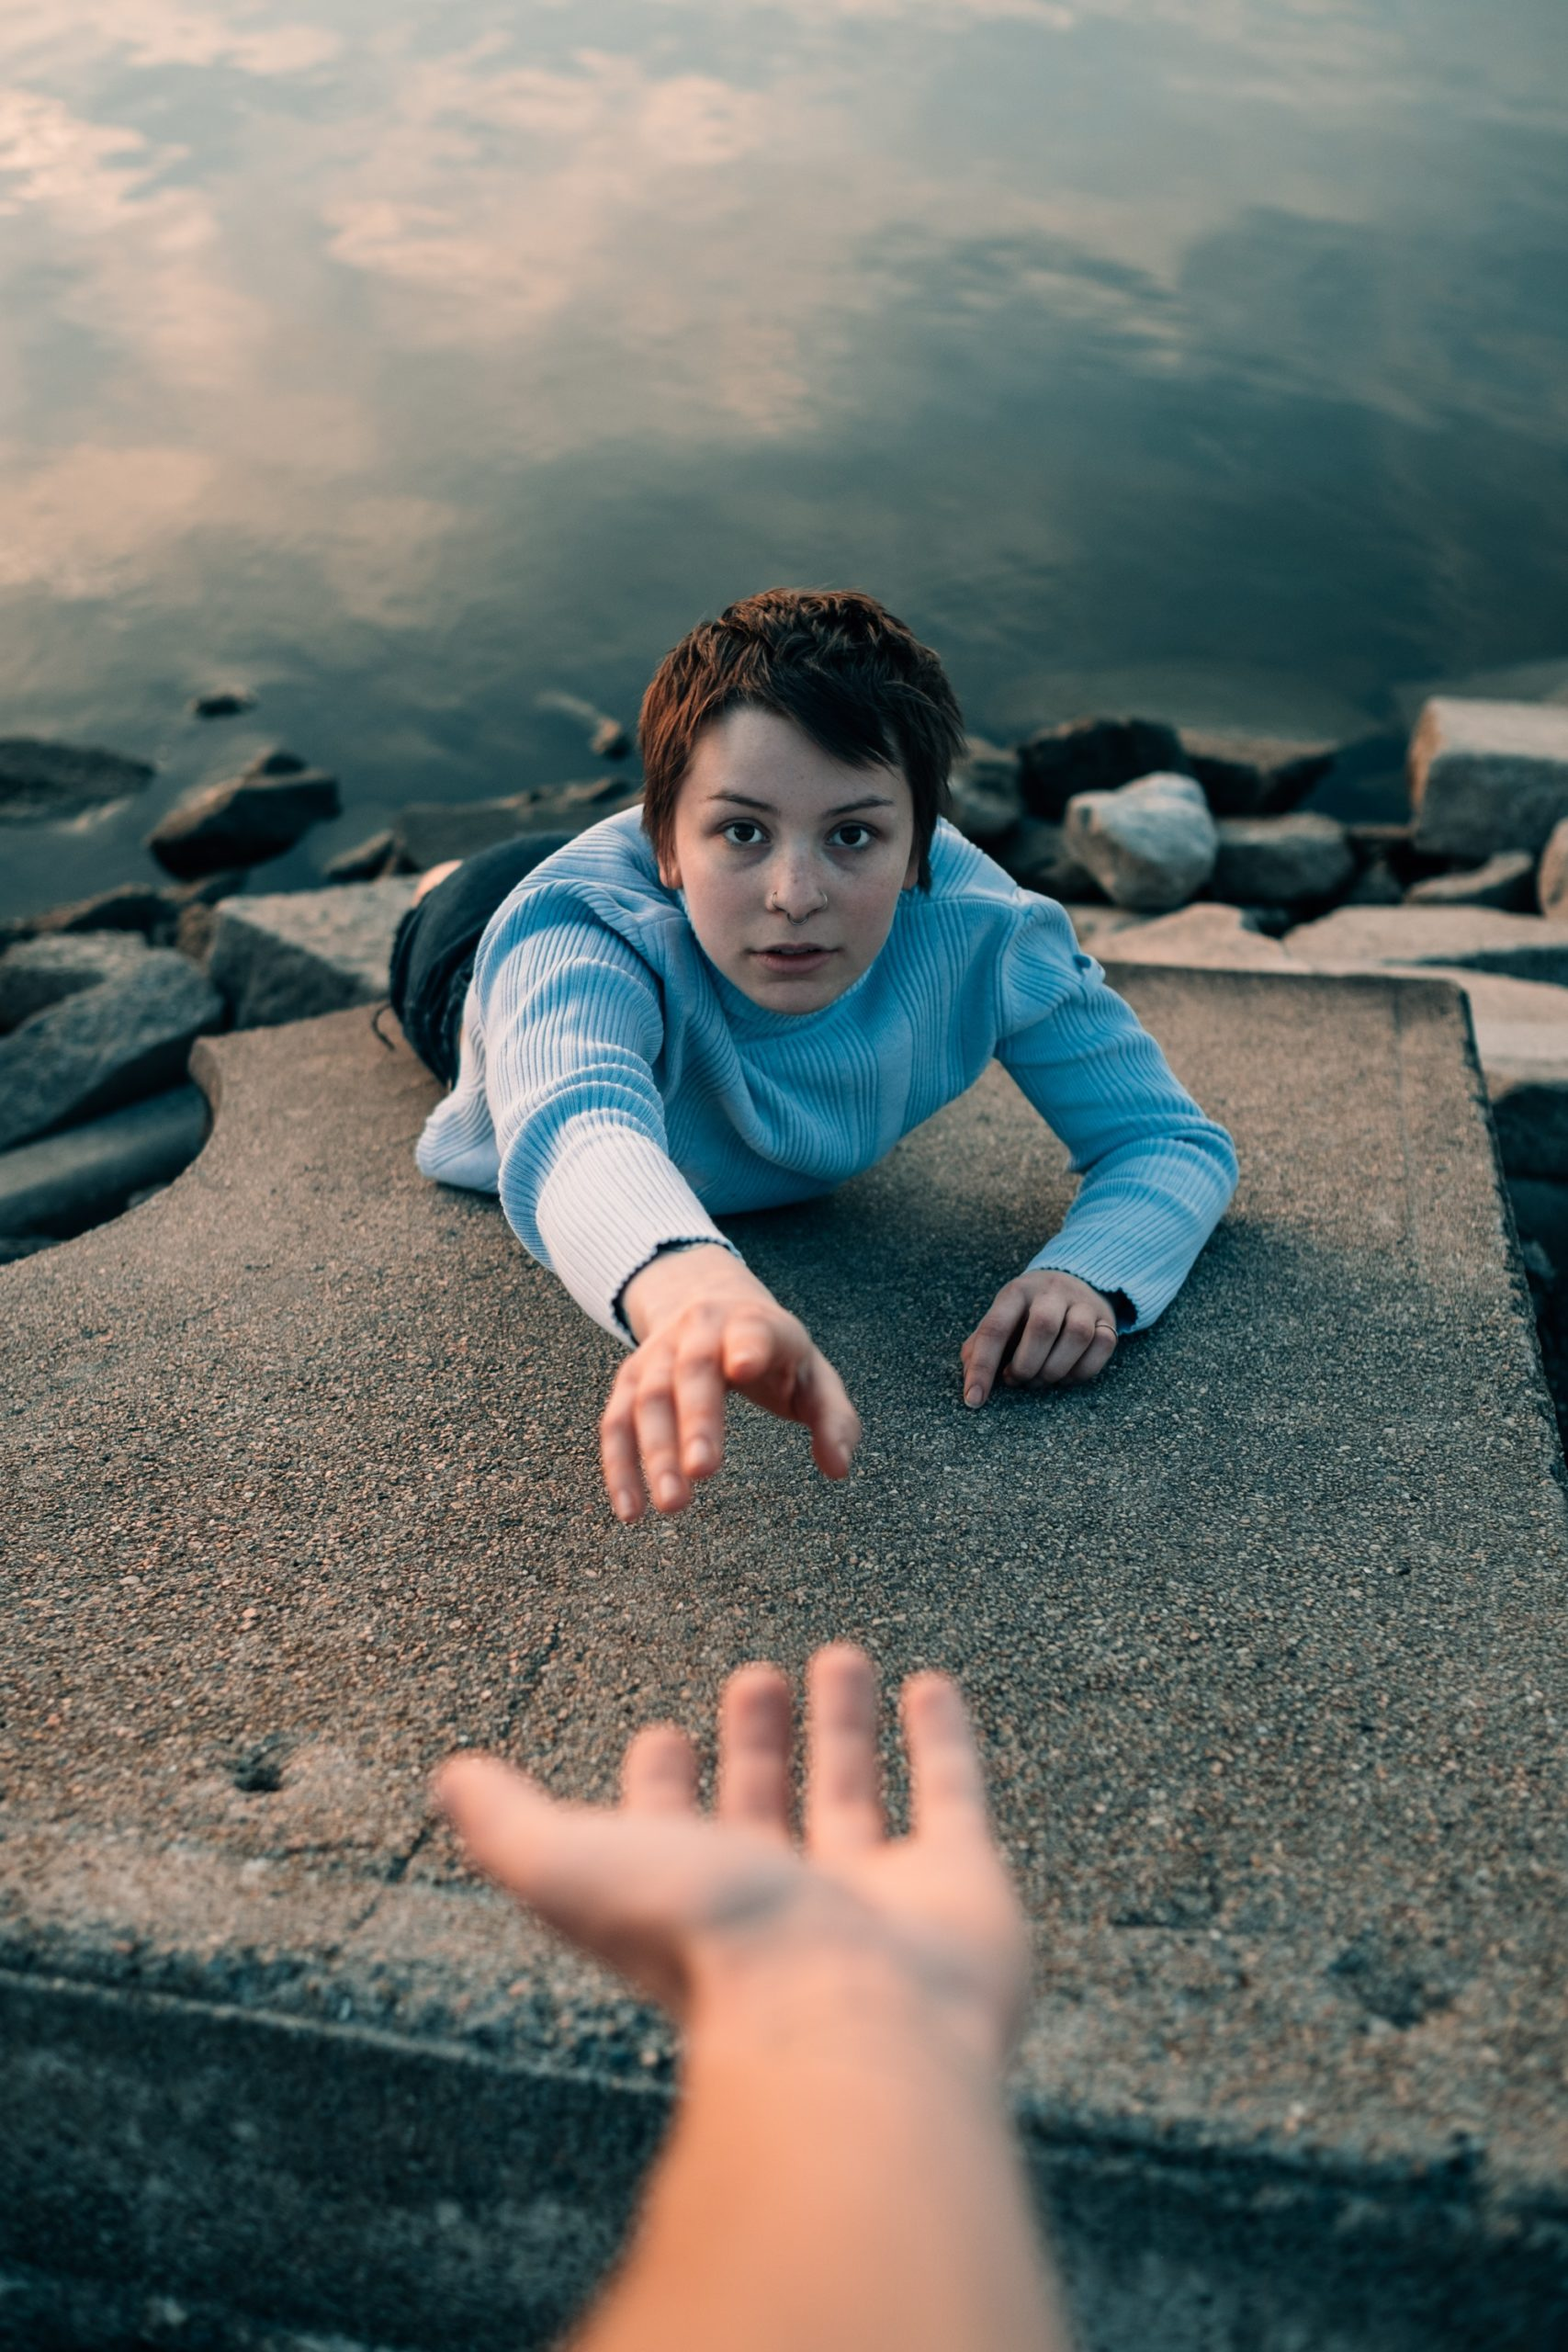 A person with short brown hair and a bright blue sweater stands on a ledge above water, extending their hand up, asking for help, as another arm reaches down towards them to help them up.